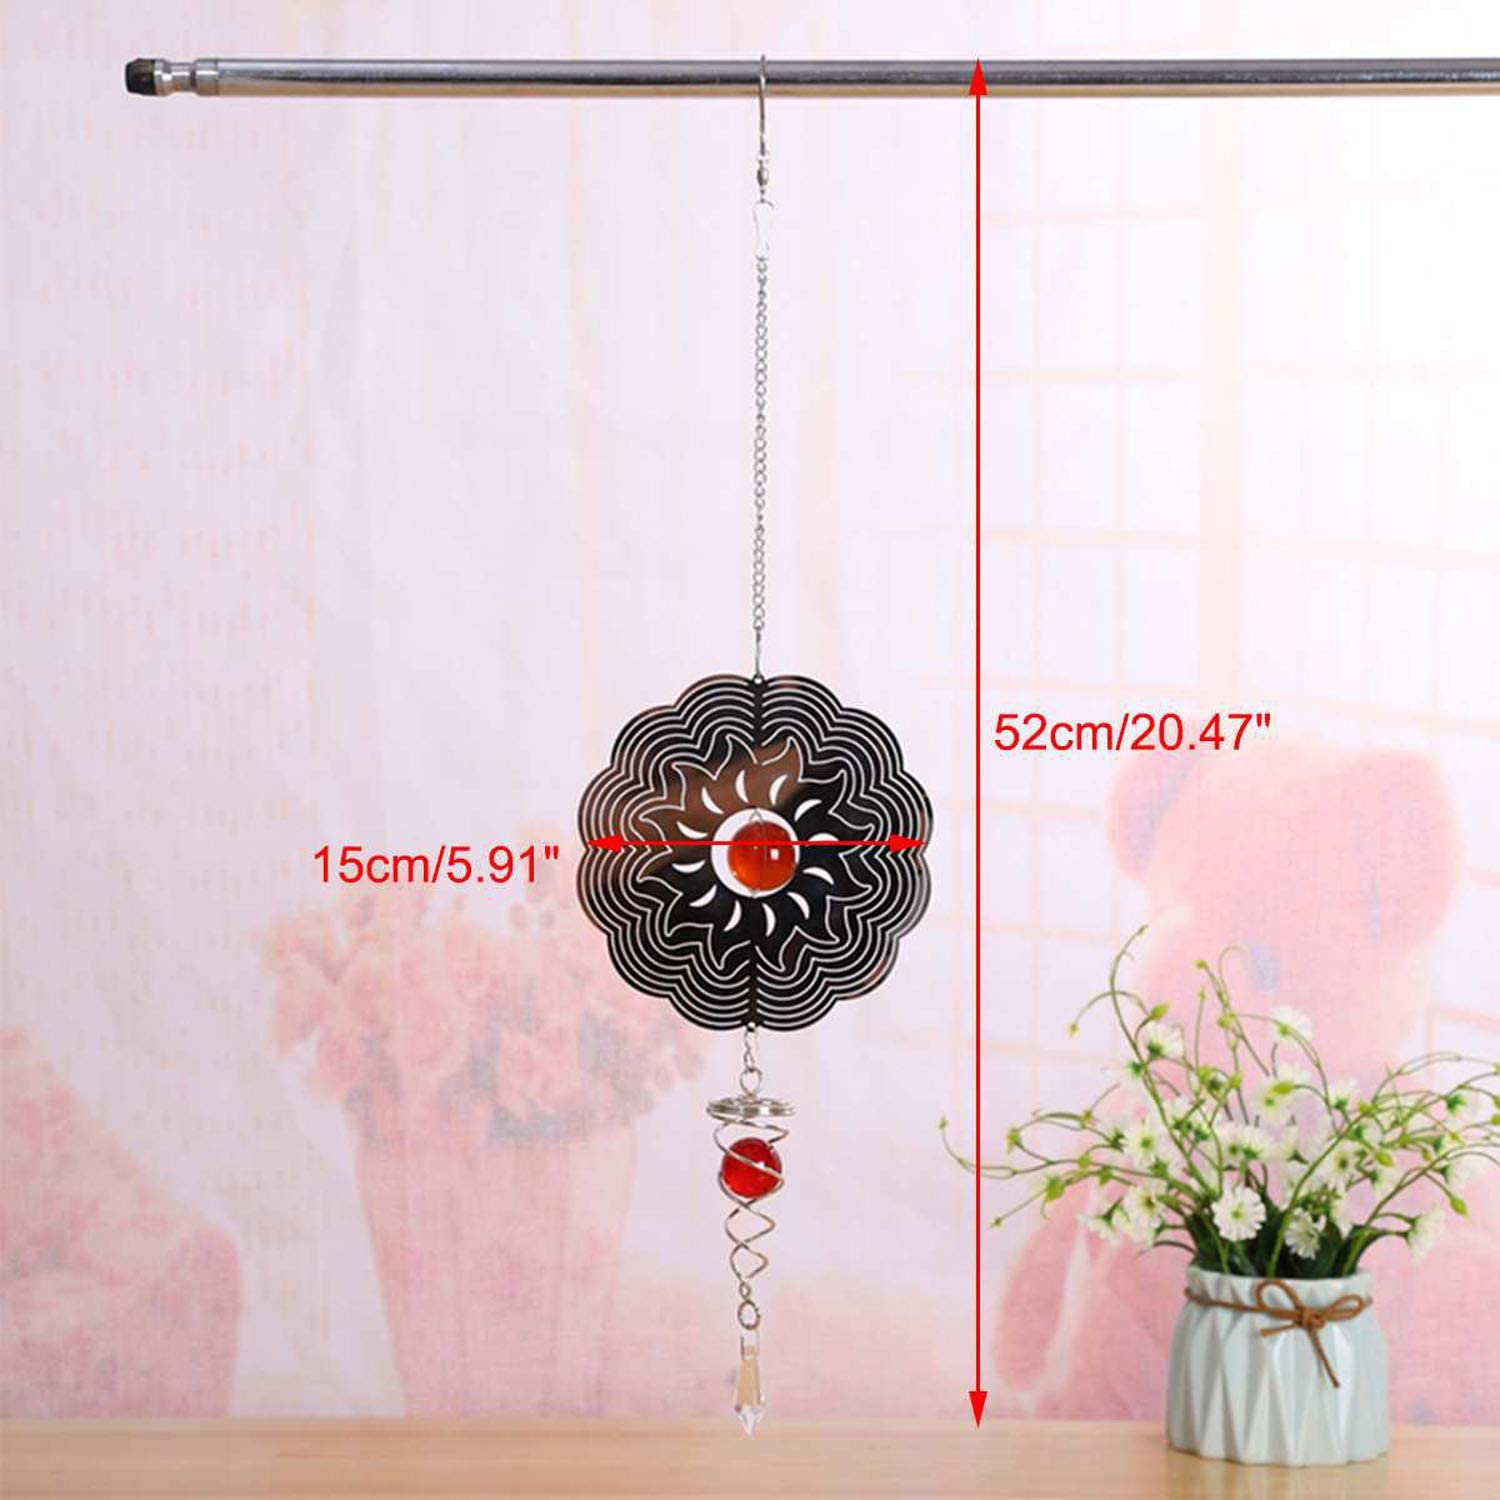 3D Metal Wind Chime Whirl Moving Rotating Hanging Decor Window Room Decoration